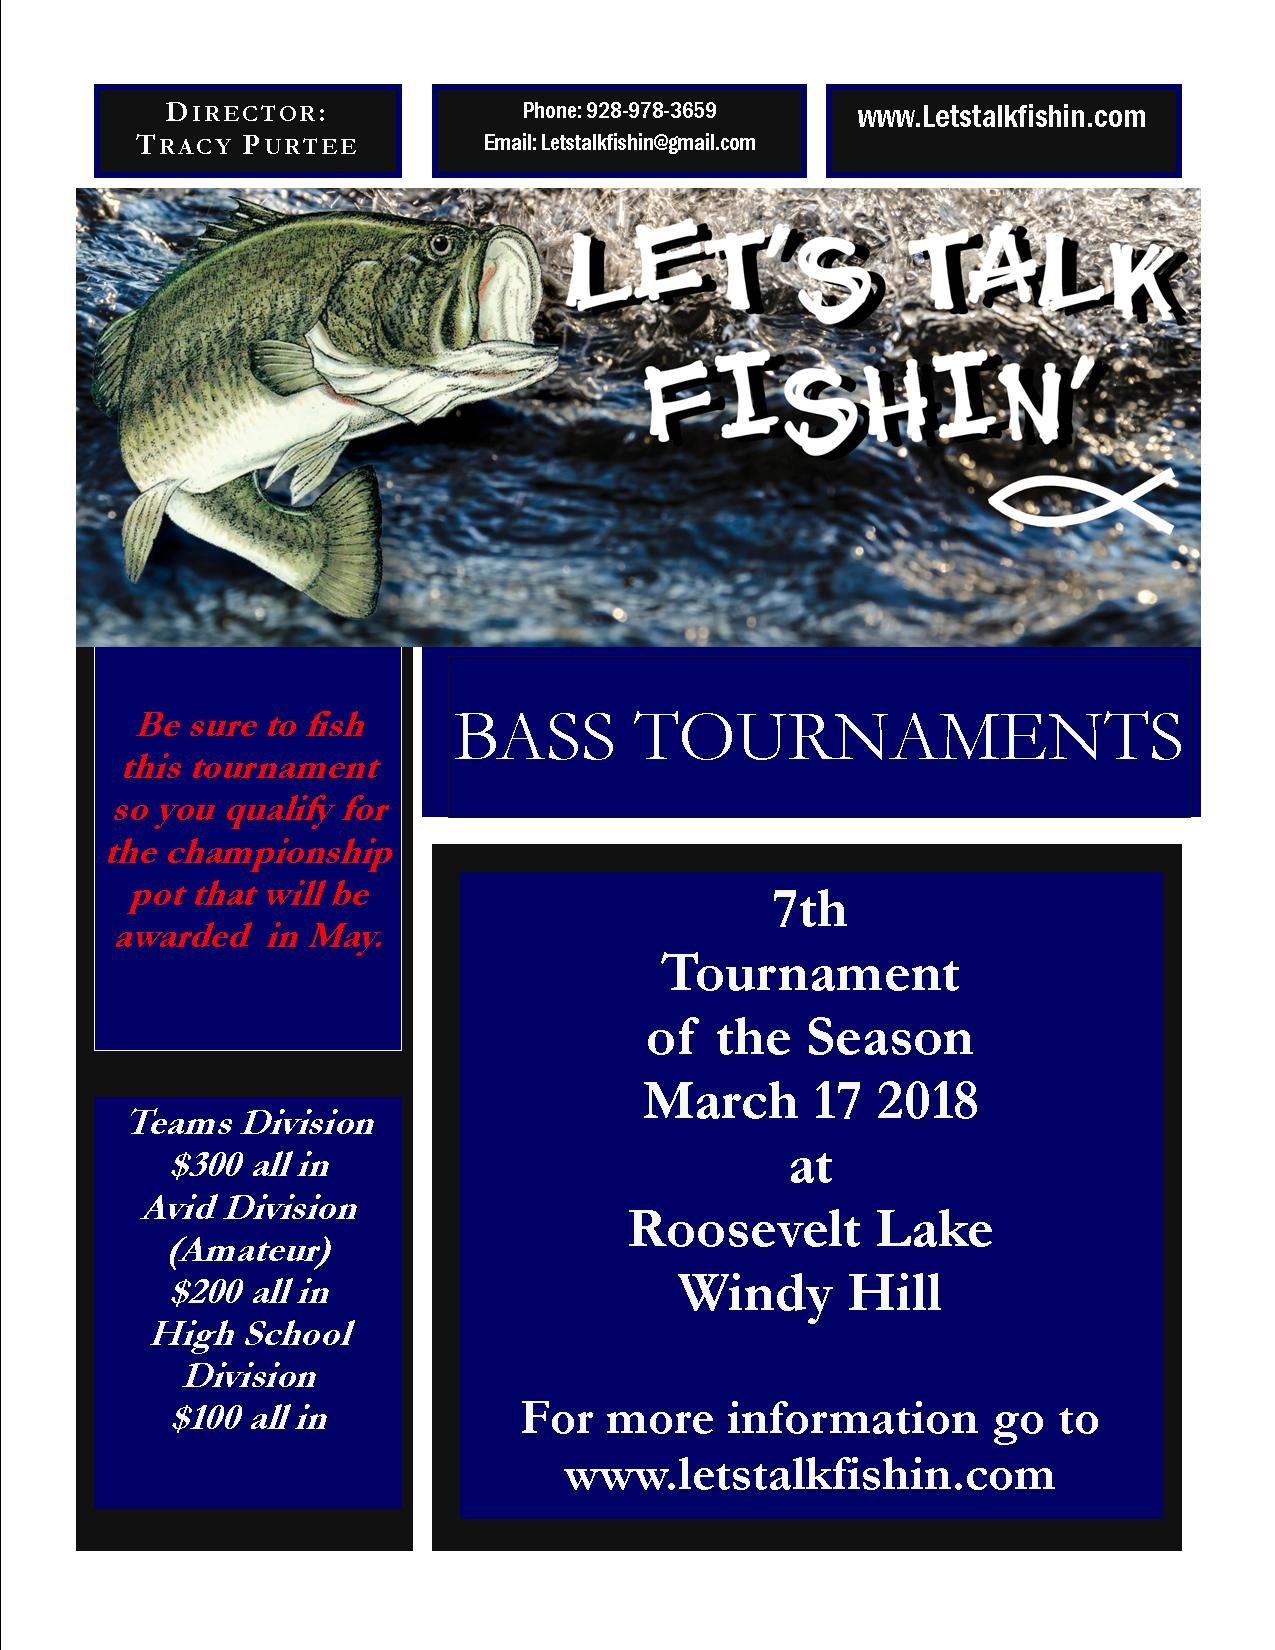 Click image for larger version  Name:7th Tournament.jpg Views:2173 Size:283.6 KB ID:96826